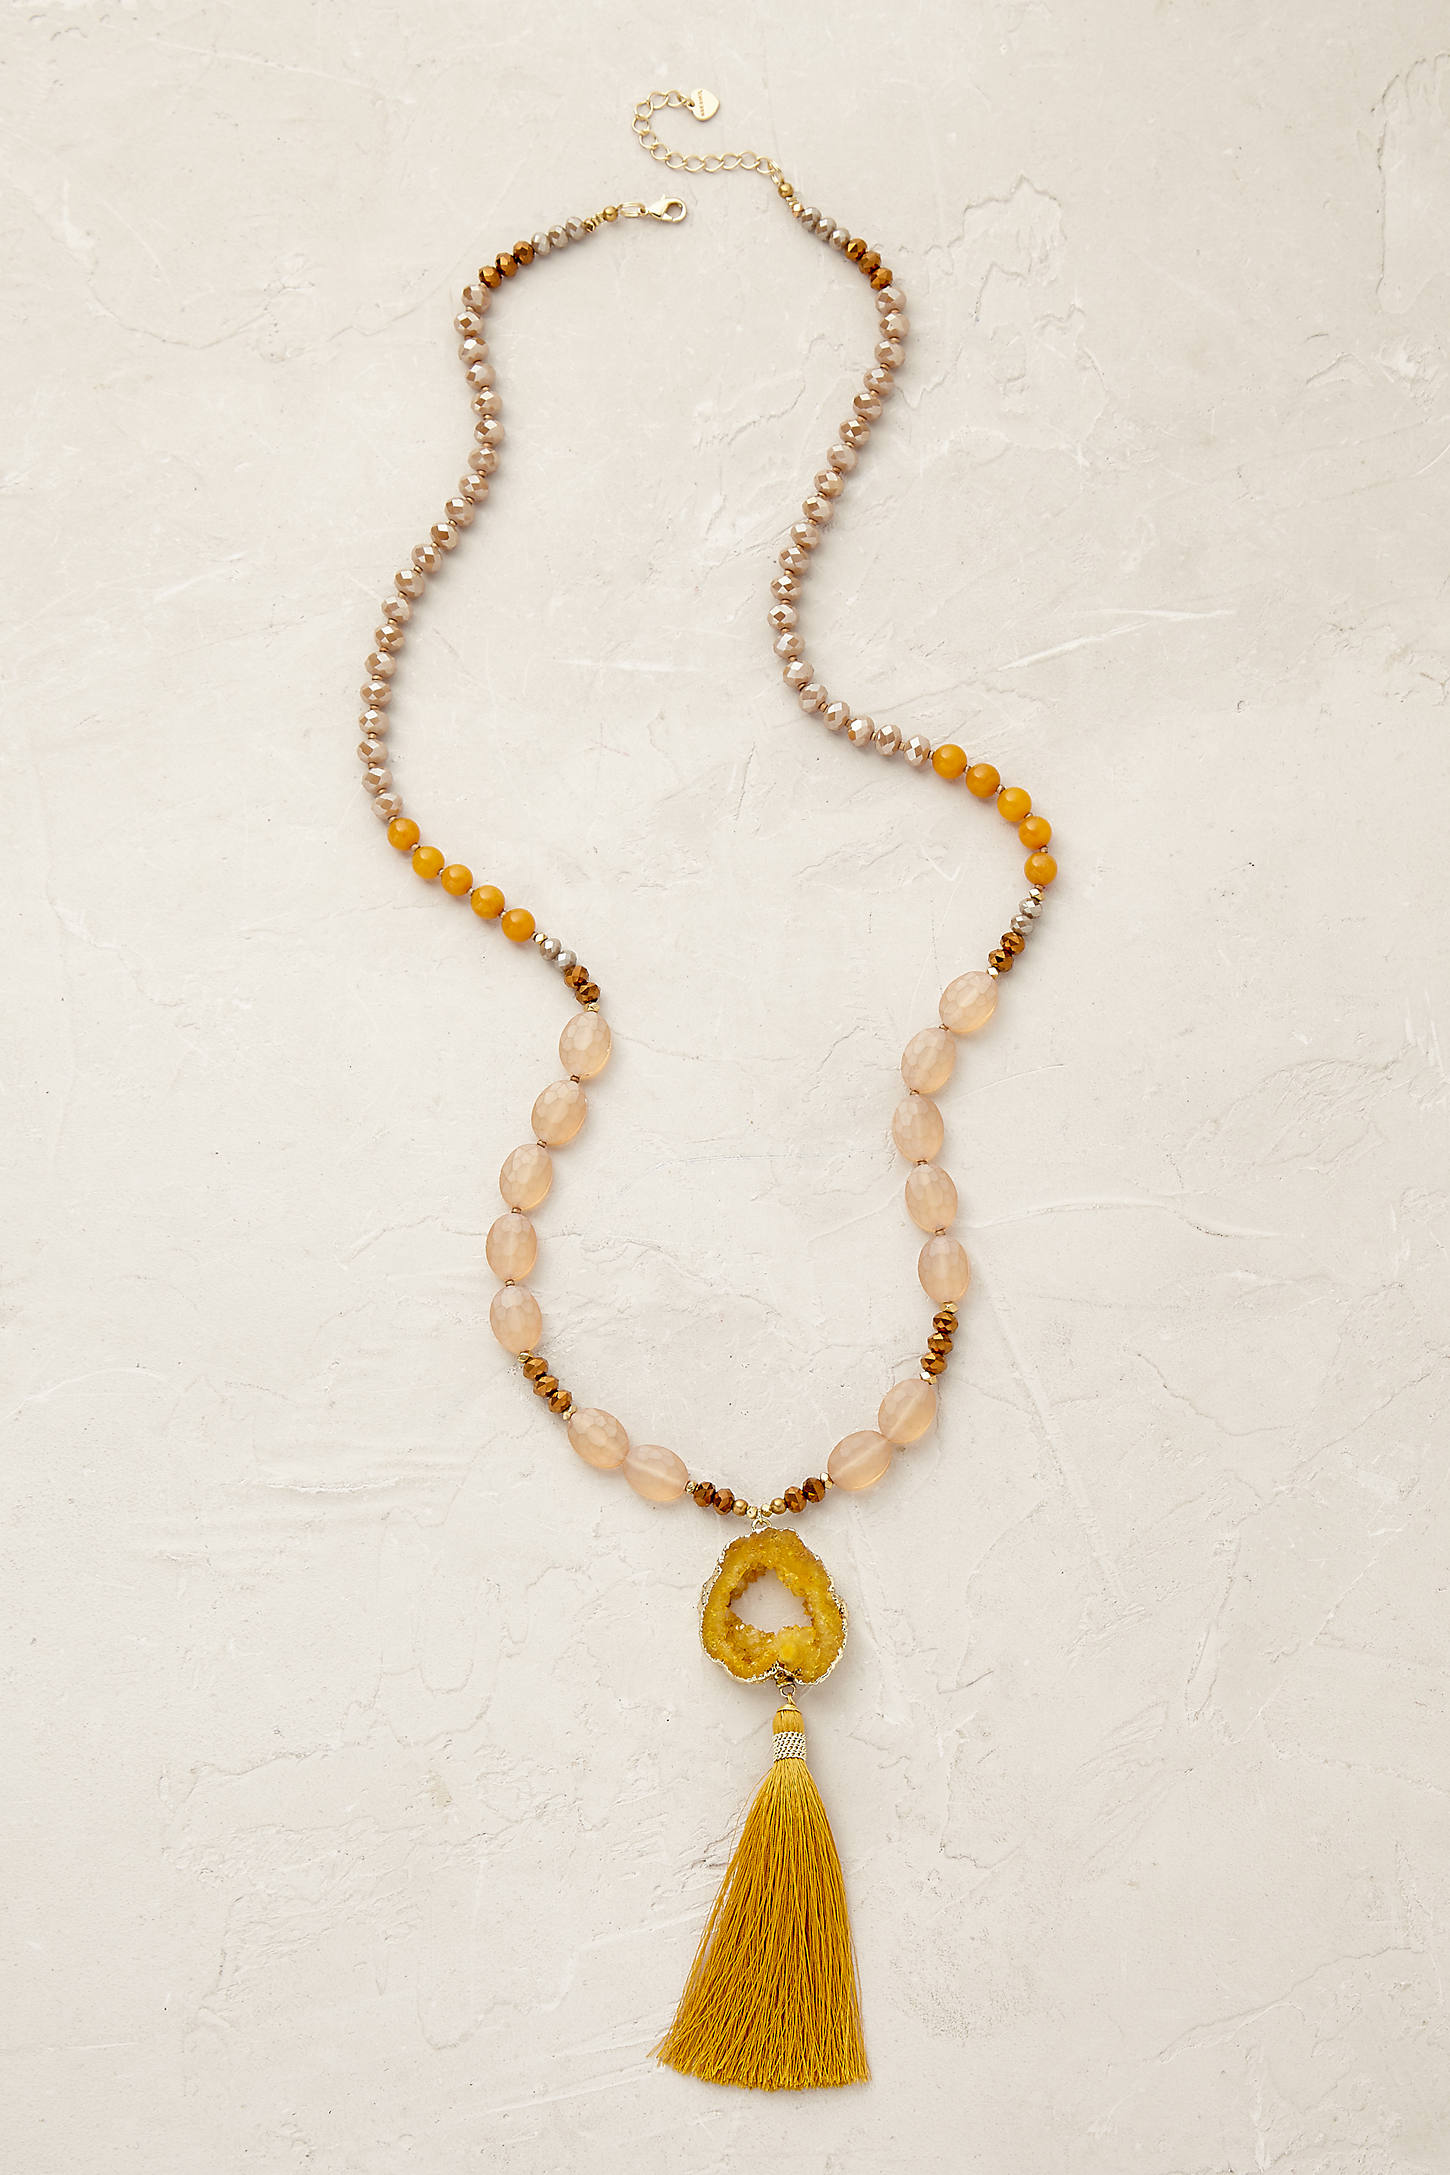 Tasselled Agate Lariat Necklace